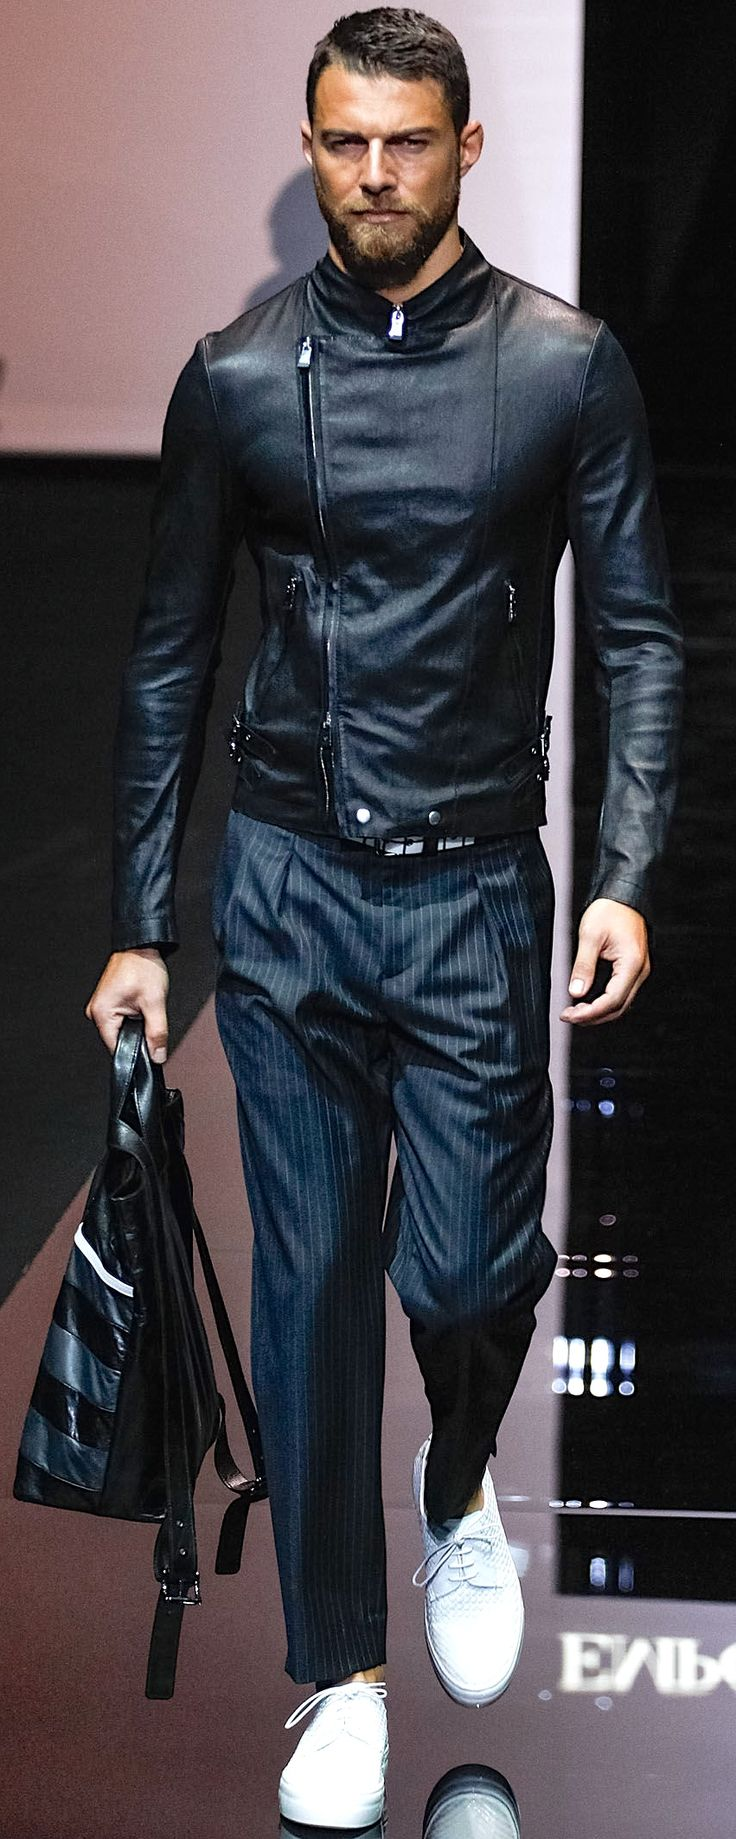 Emporio Armani summer 2015. Damn looks good this year. Normally I'm not fan of Armani but this year and this remind me of why I shouldn't have lost my Dolce jacket :'(